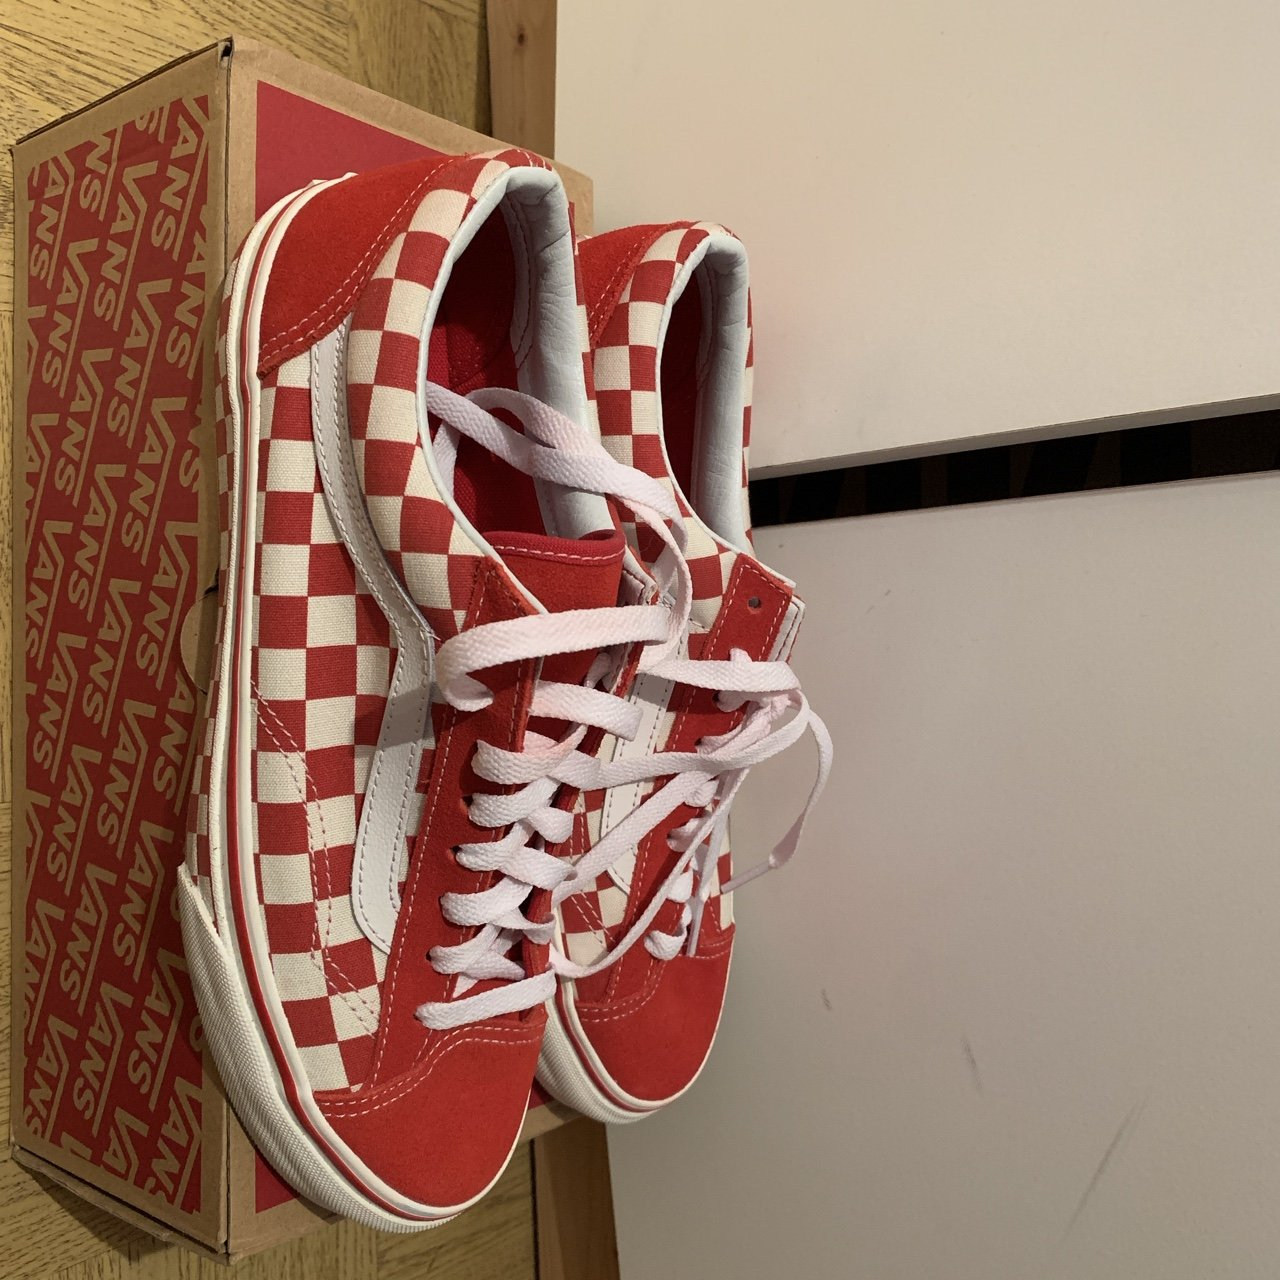 Vans red checkerboard style 36. UK 6.5. Worn once. Perfect - Depop 1b7ea931d